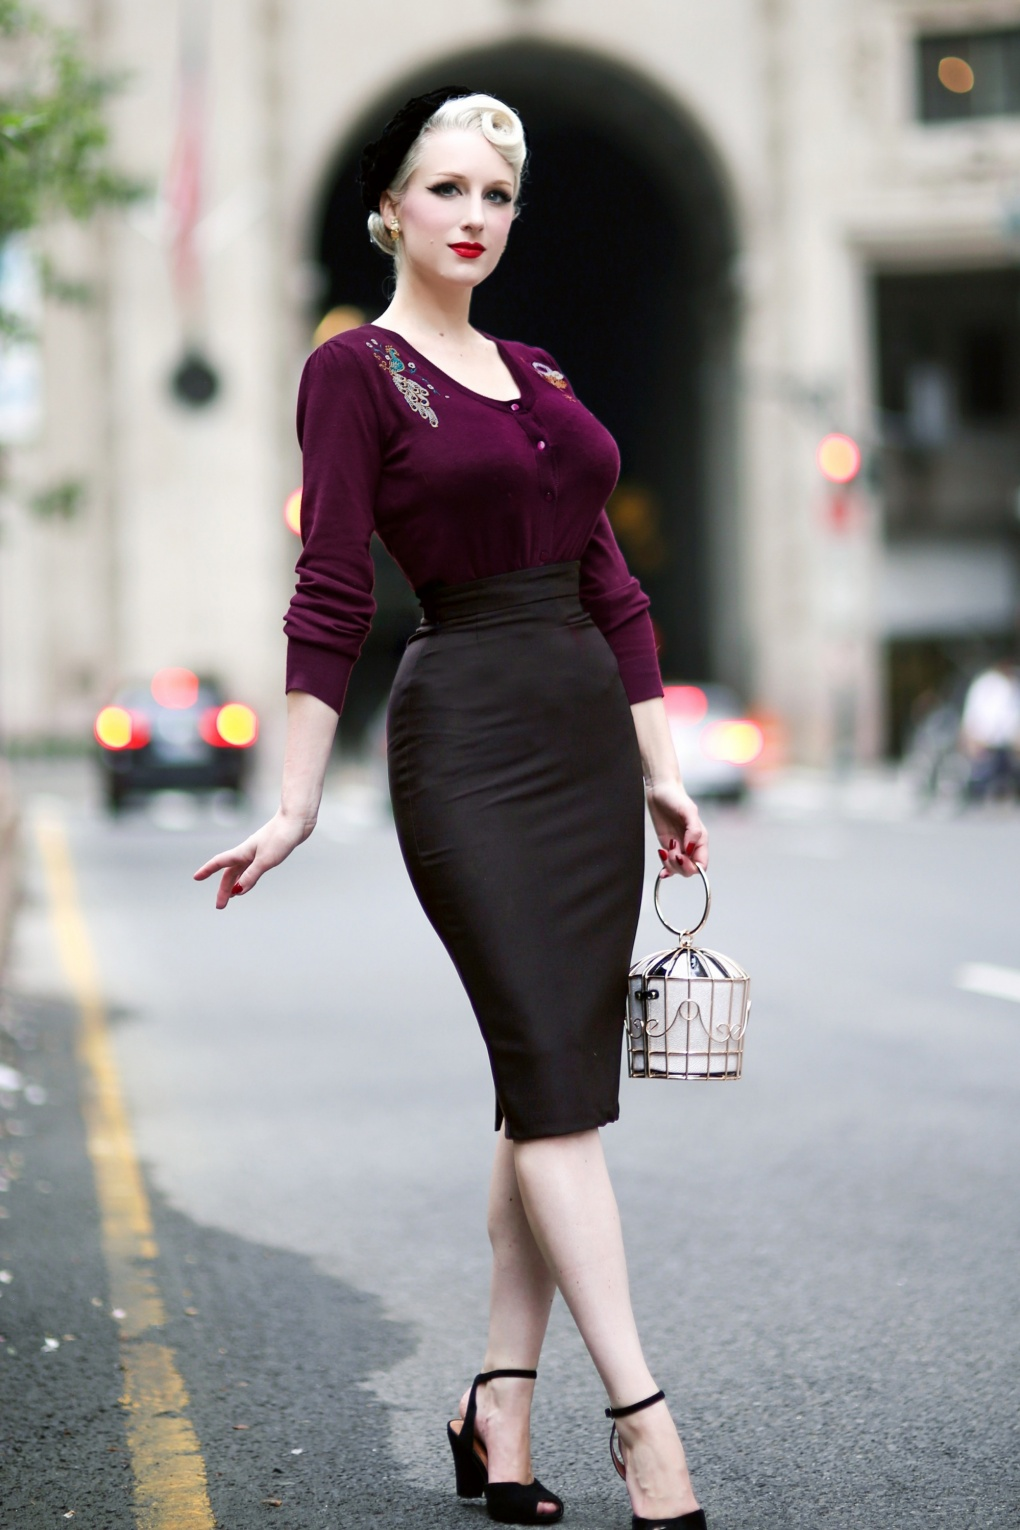 Retro Skirts: Vintage, Pencil, Circle, & Plus Sizes 50s High Time Pencil Skirt in Black £45.07 AT vintagedancer.com